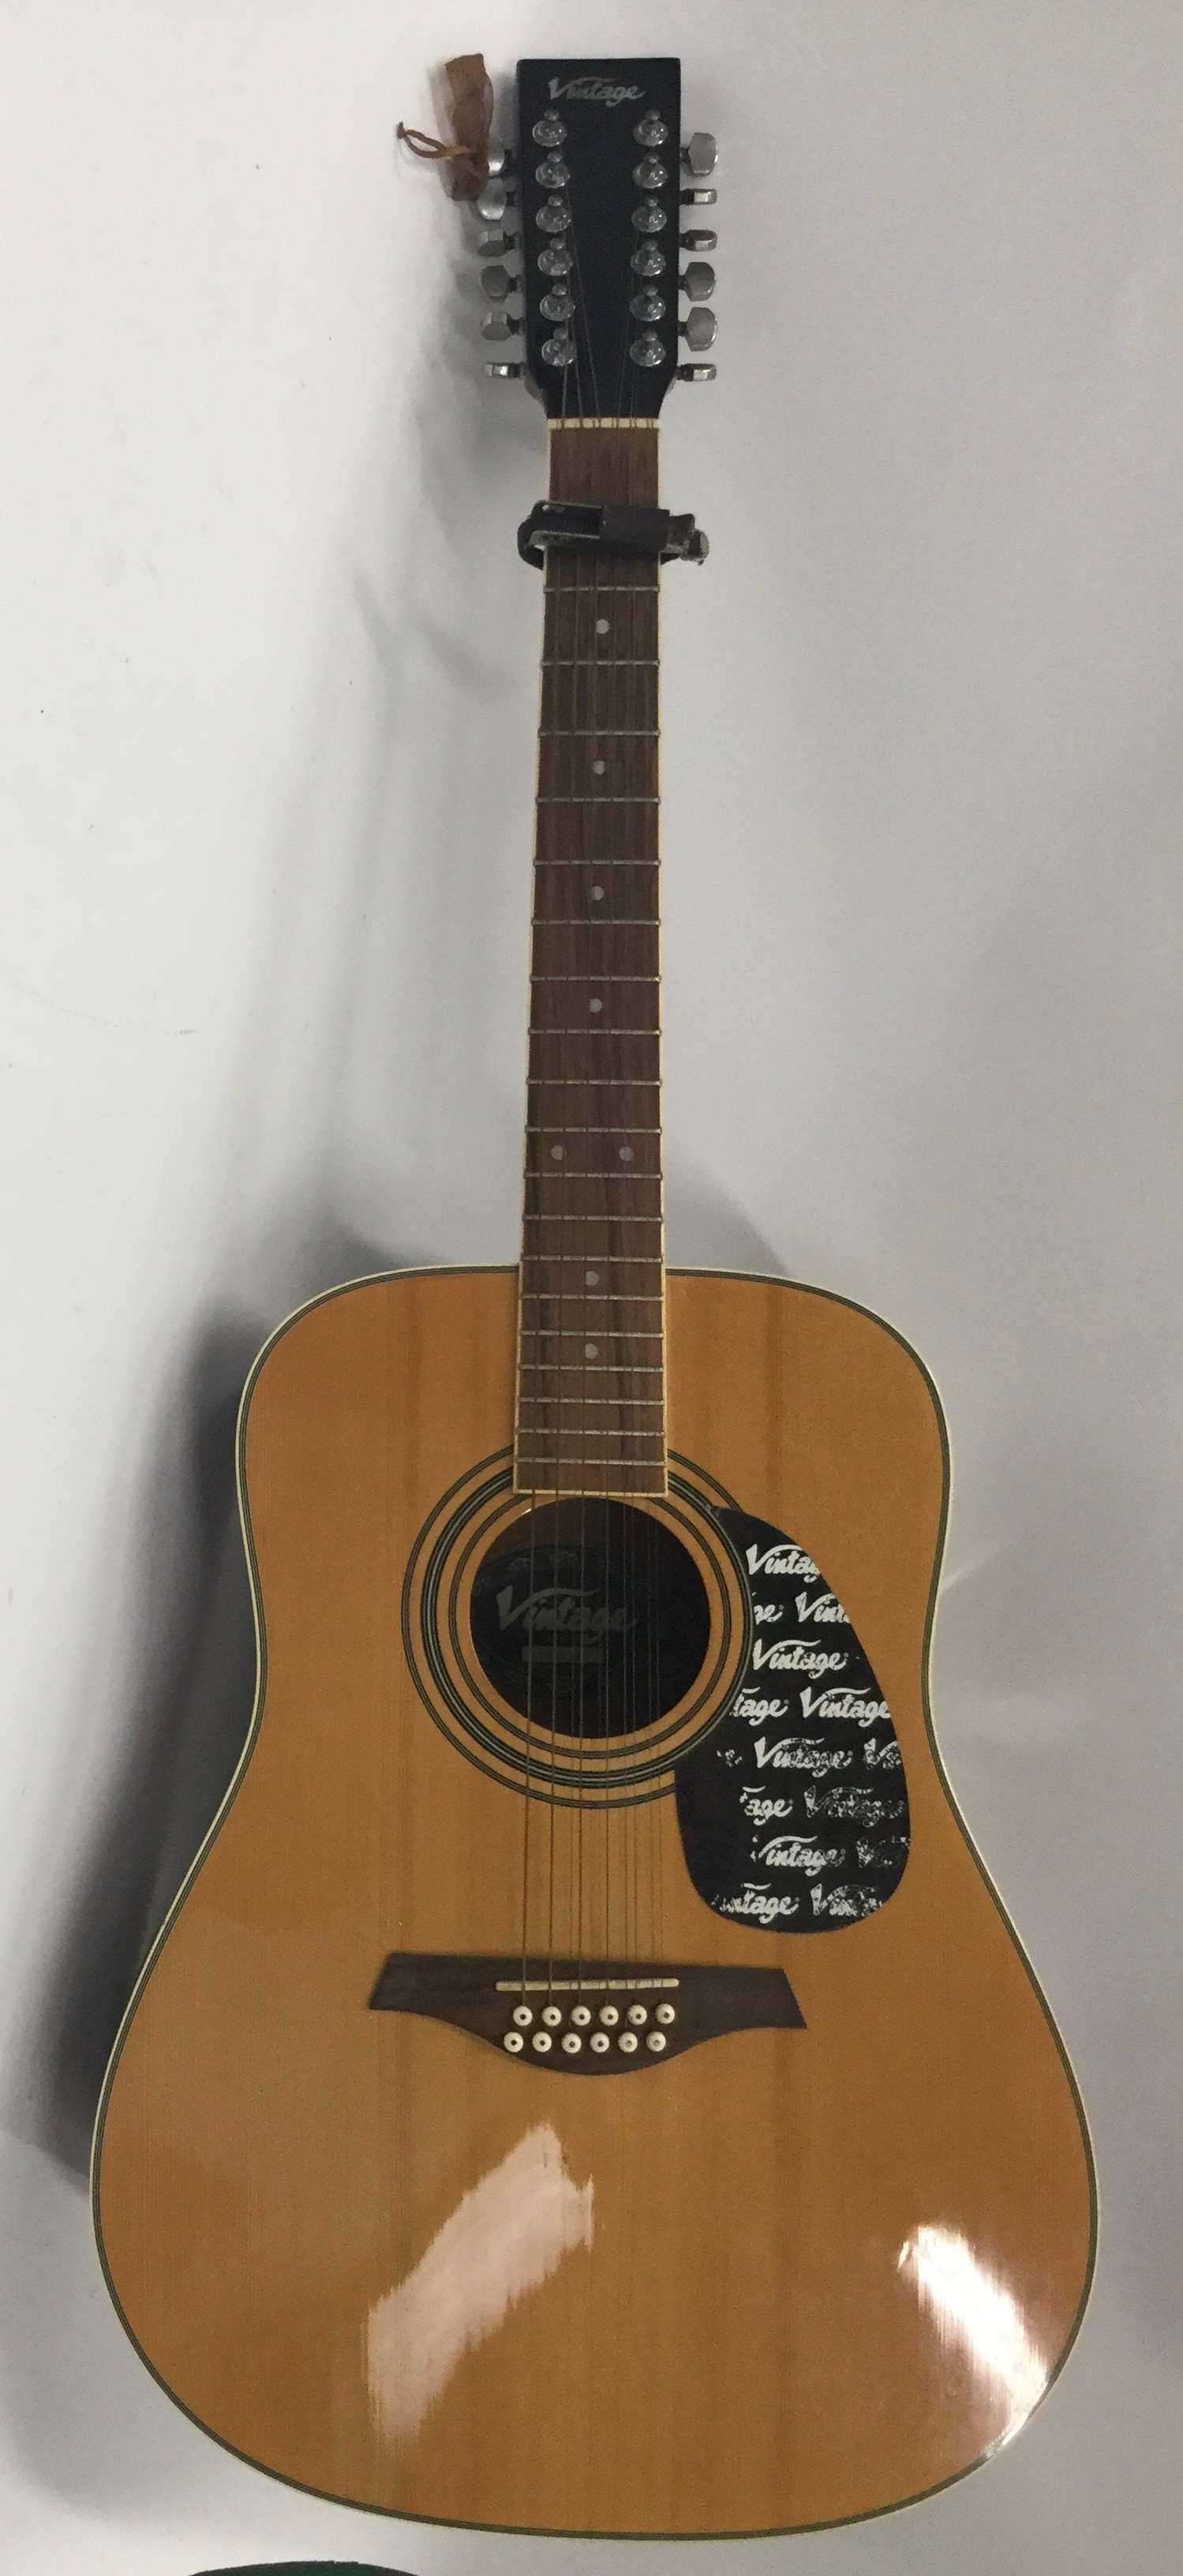 VINTAGE V400-12 ACOUSTIC GUITAR. An excelent chance to obtain this very good condition Vintage 12